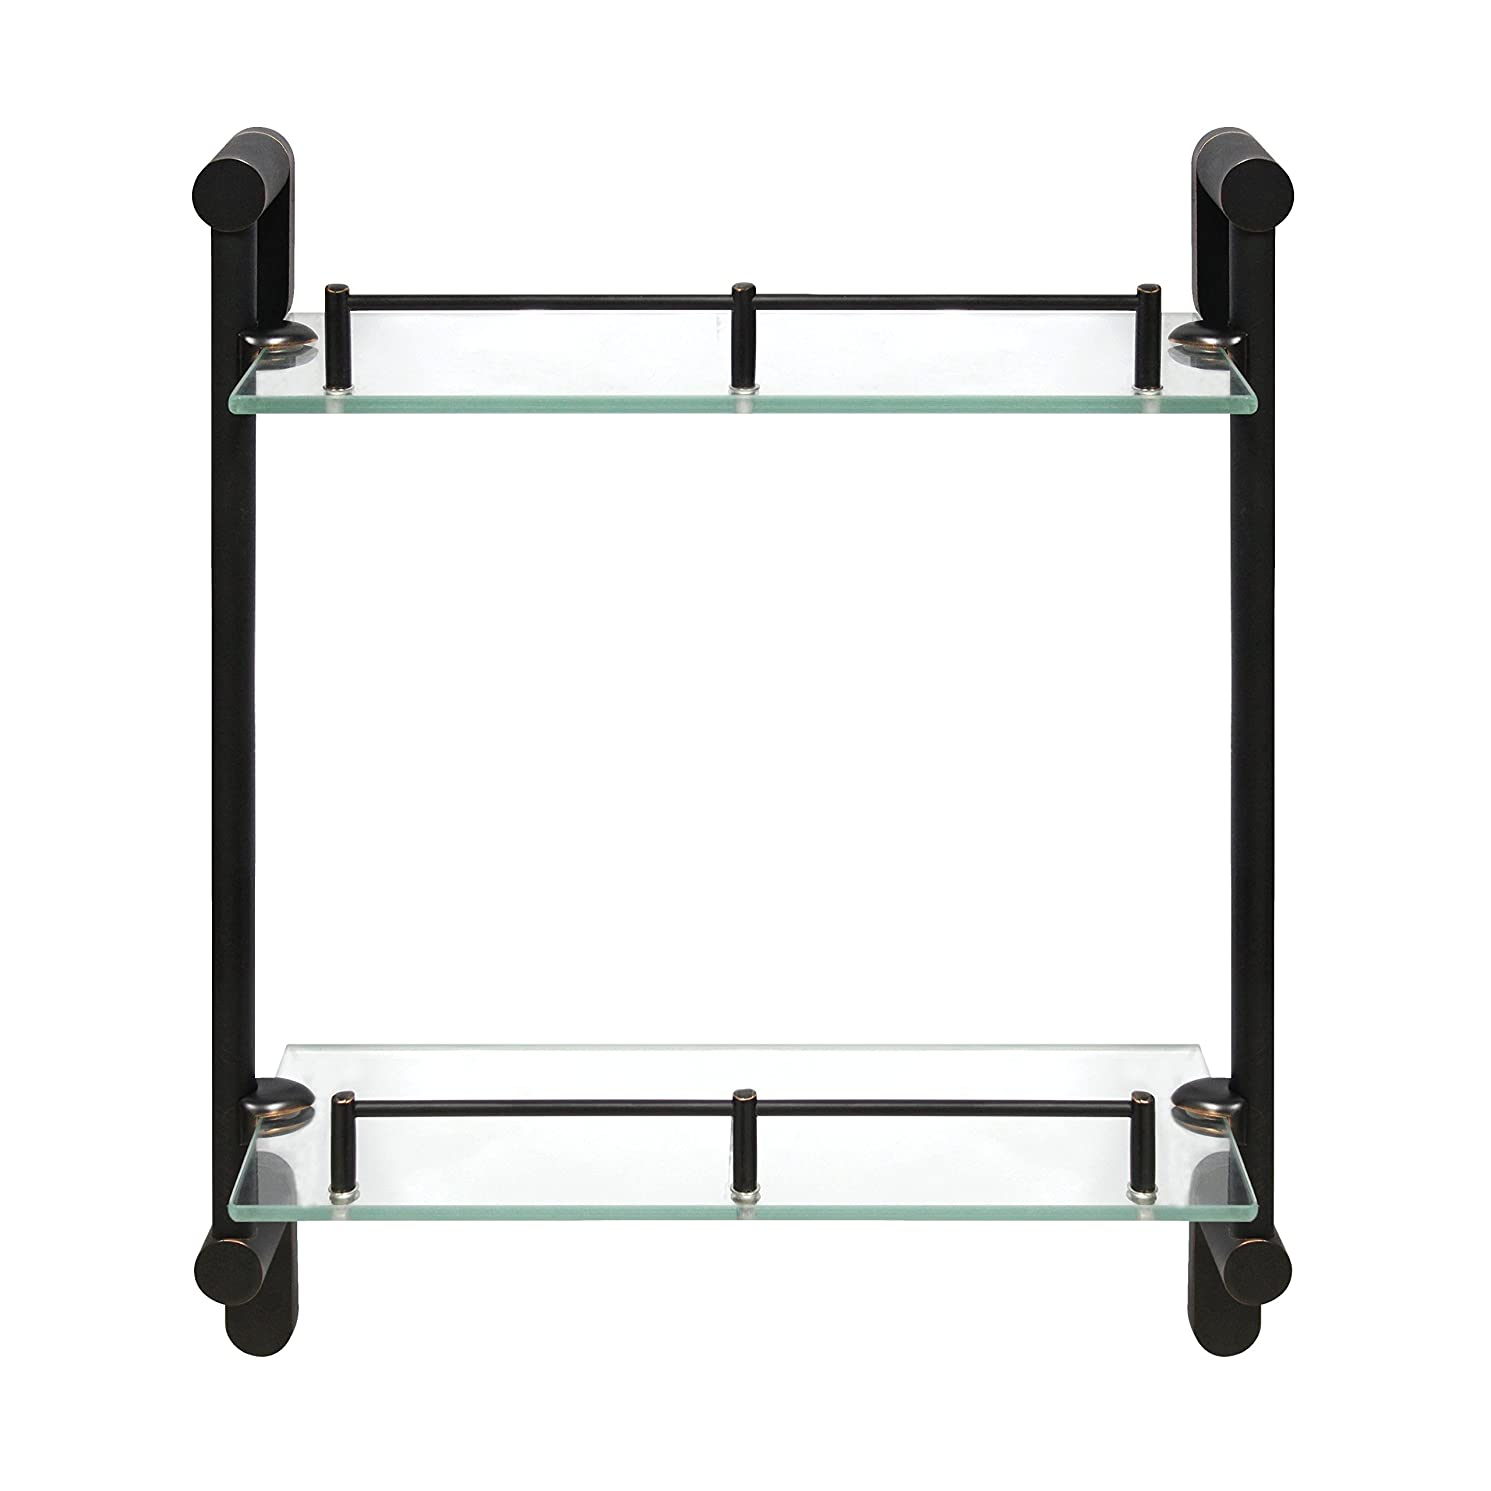 MODONA Double Wall Glass Shelf with Pre-installed Rail - RUBBED BRONZE - Oval Series - 5 Year Warrantee